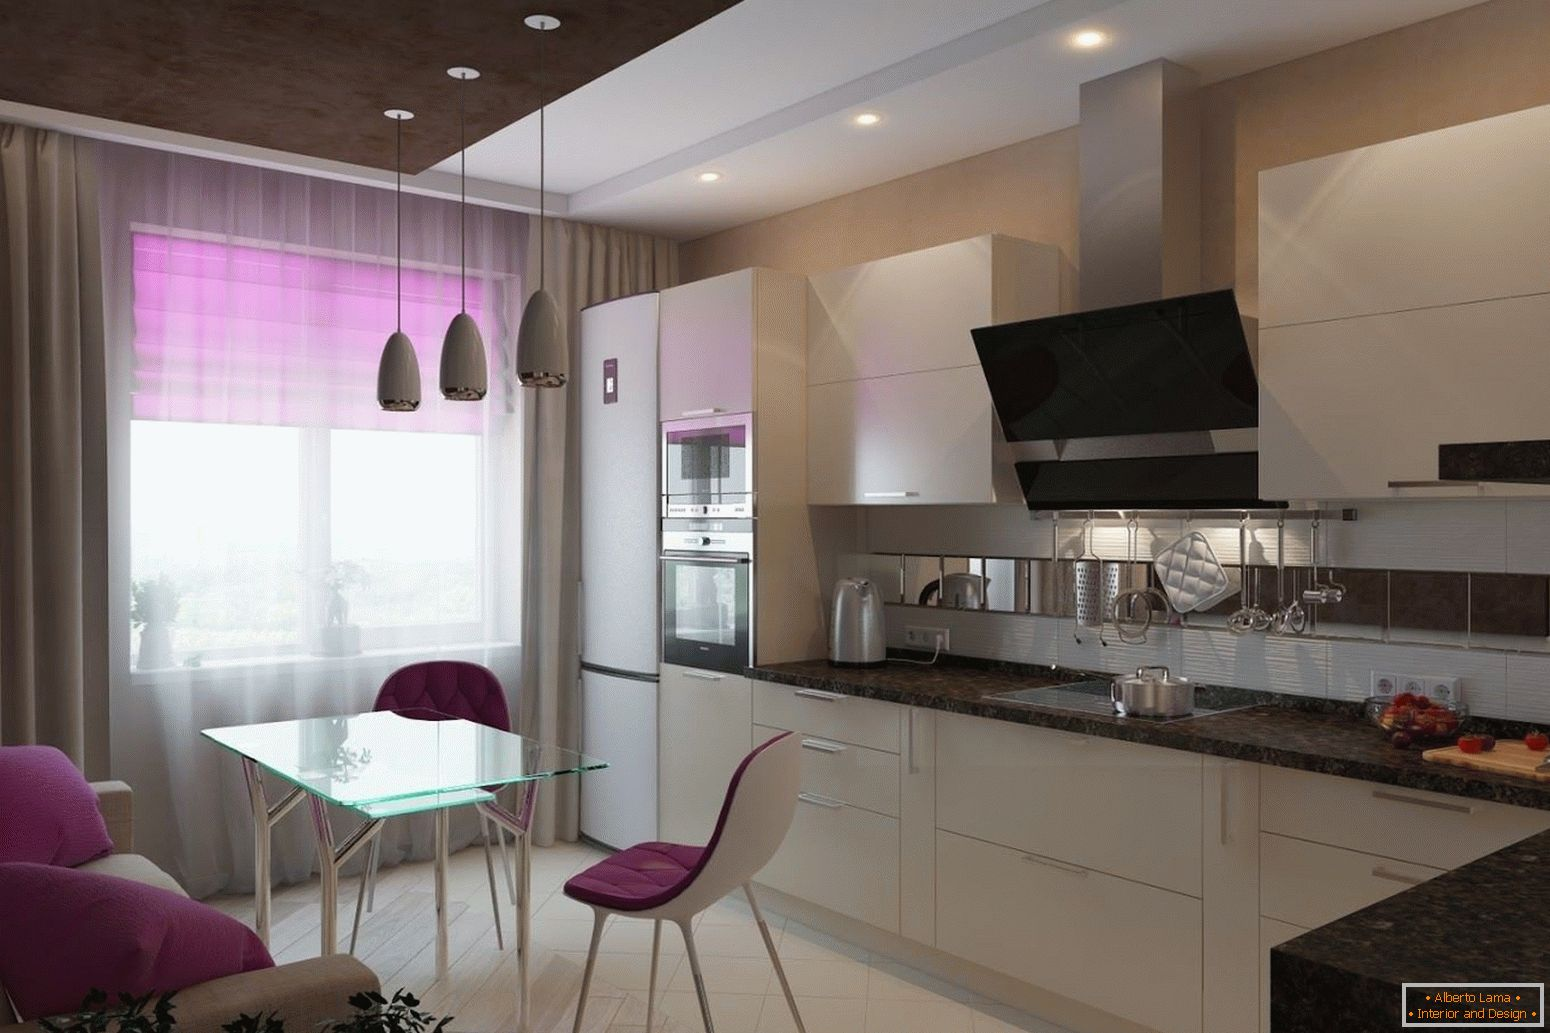 White kitchen with lilac elements of decor